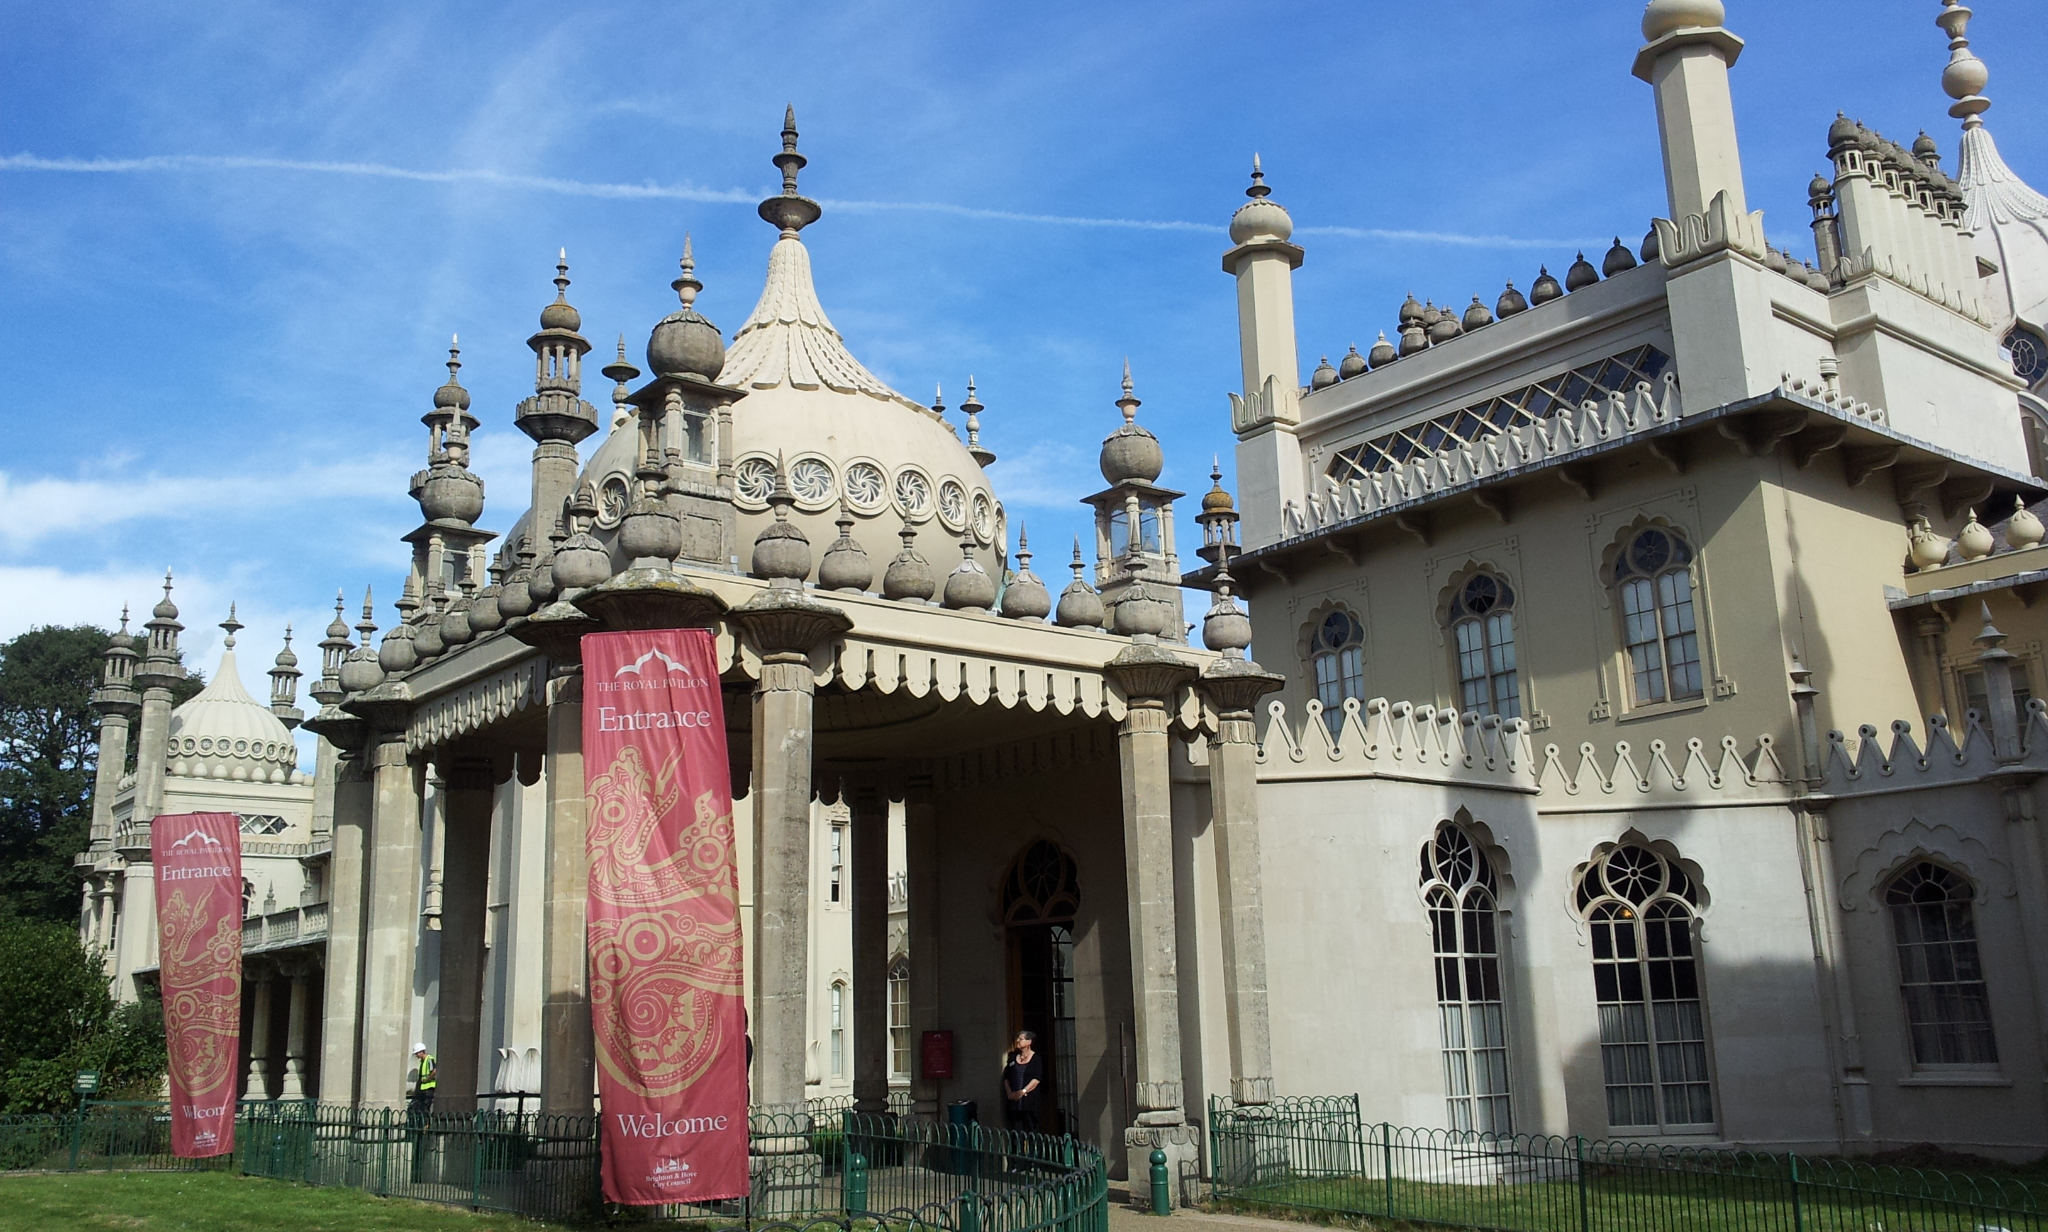 Brighton Pavilion